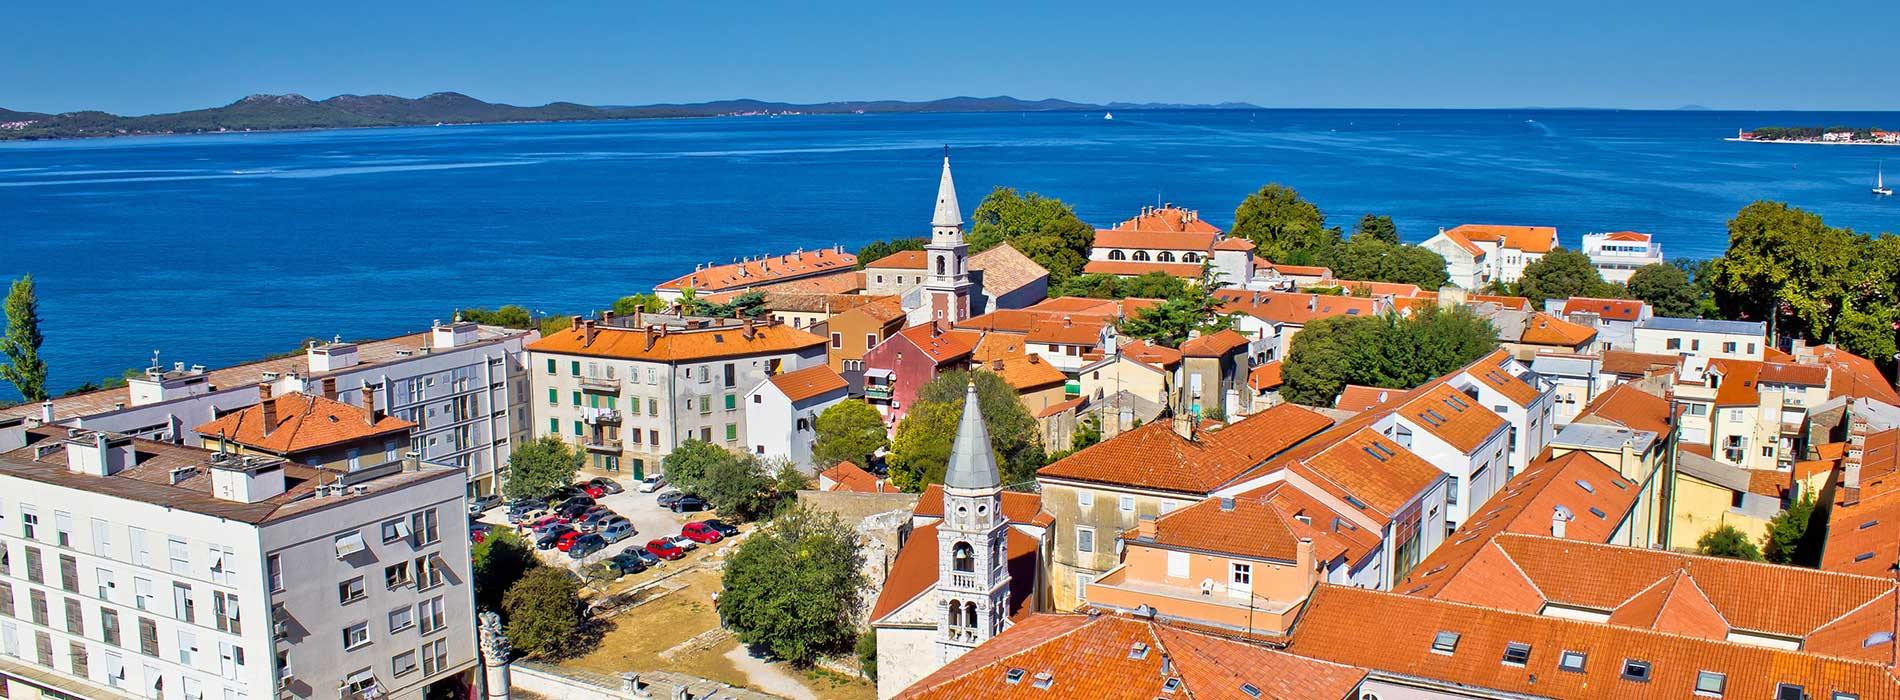 Colorful city of Zadar.jpg